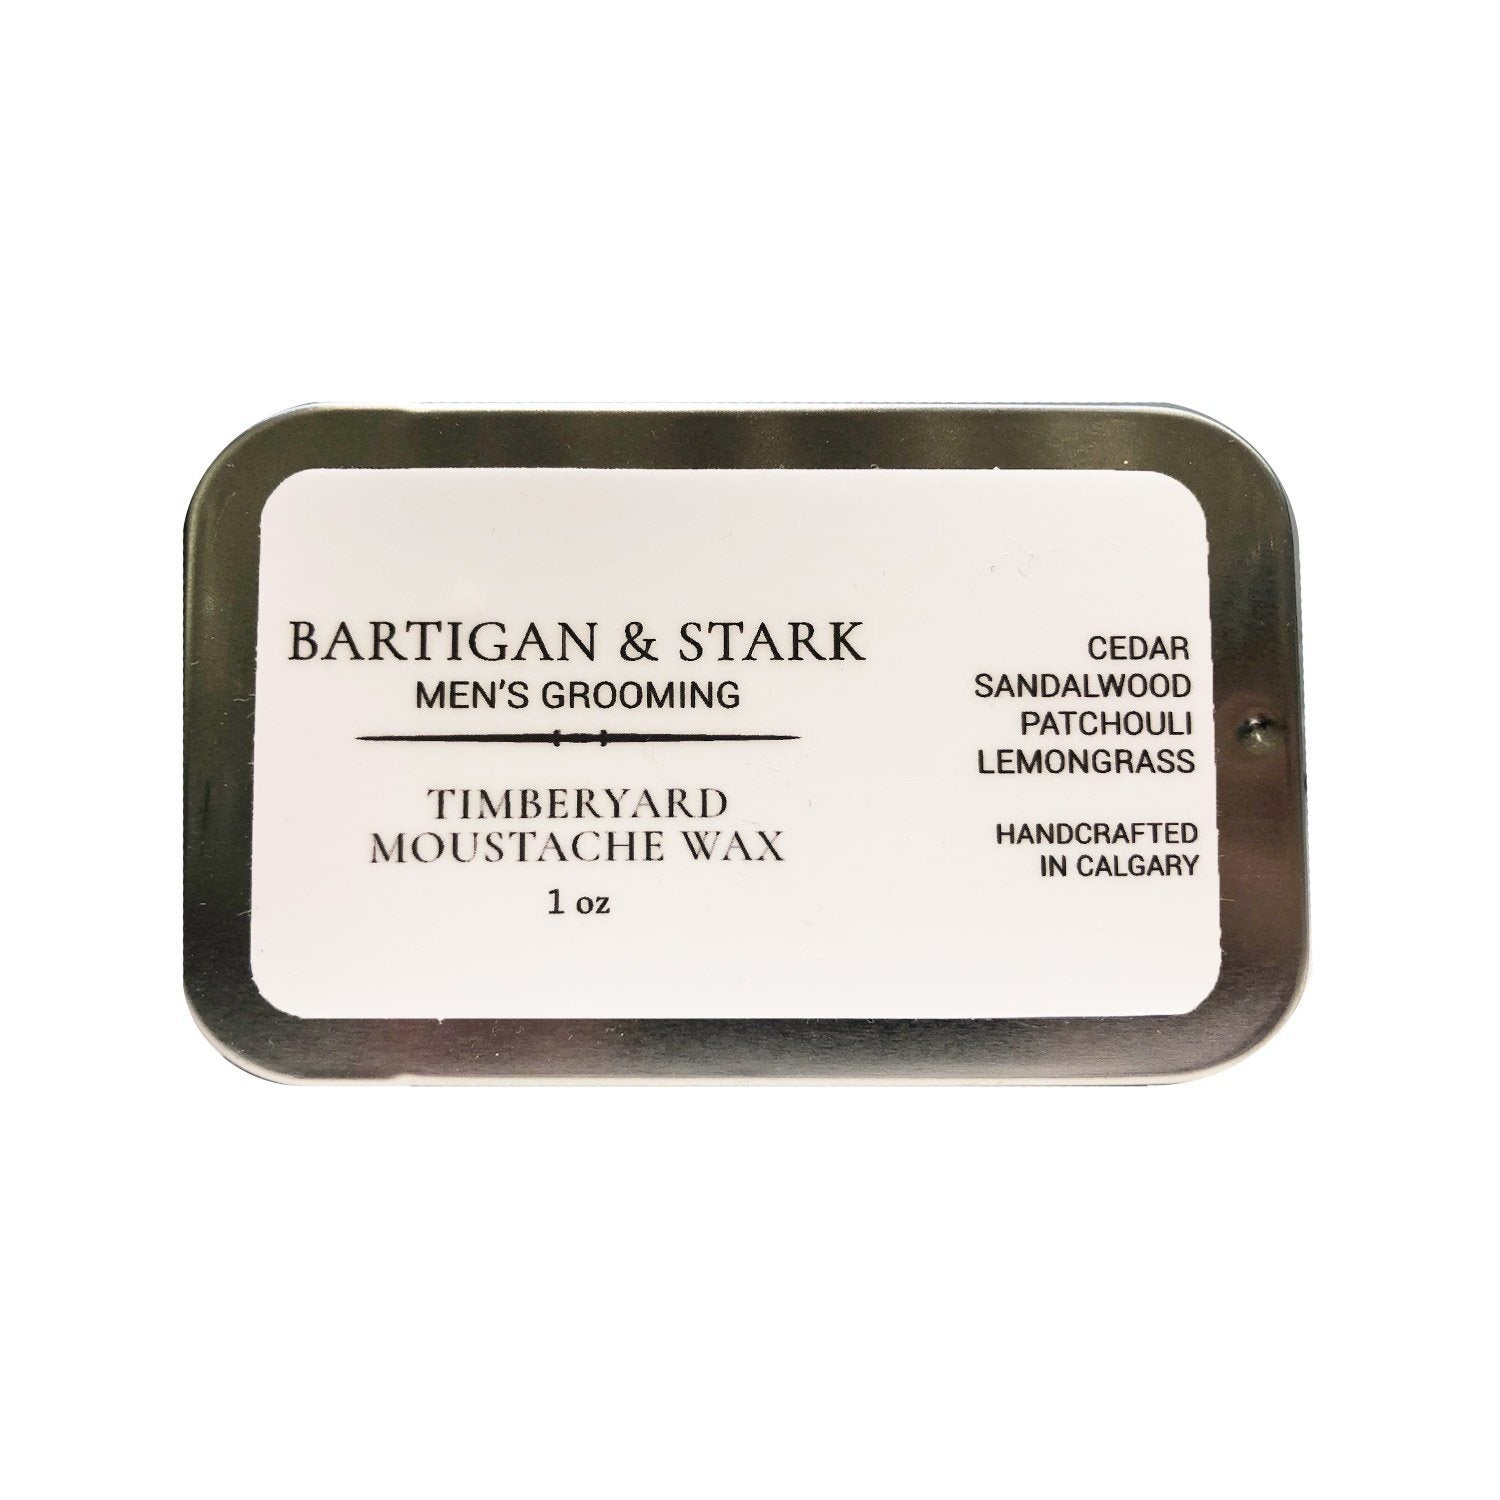 Bartigan & Stark Timberyard Moustache Wax Grooming Supplies Bartigan & Stark